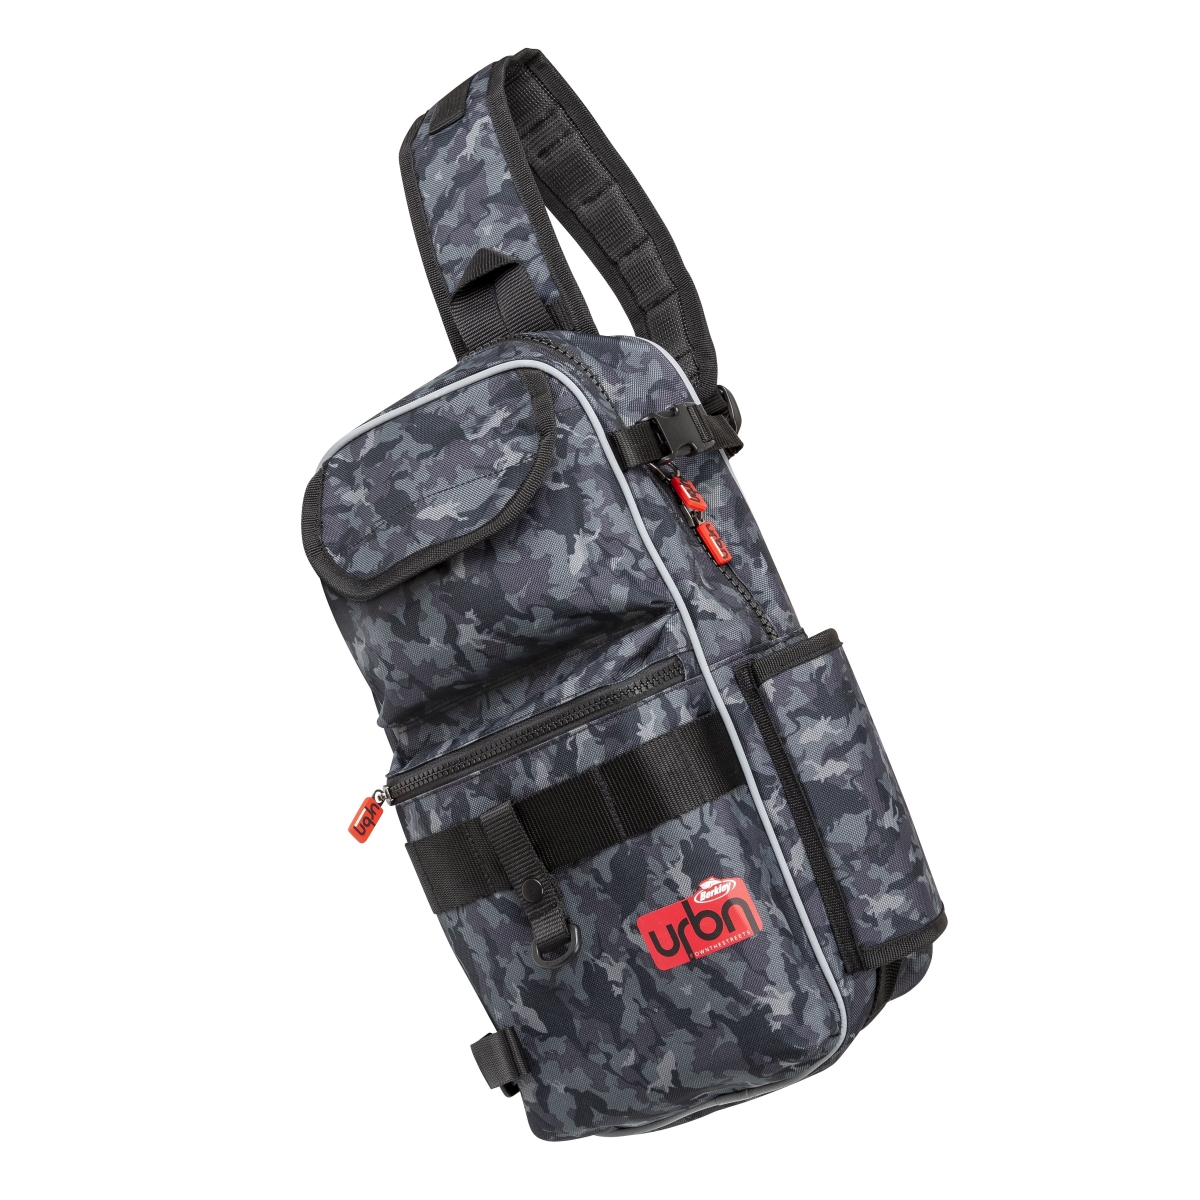 BERKLEY Batoh Berkley URBN Sling Body Bag